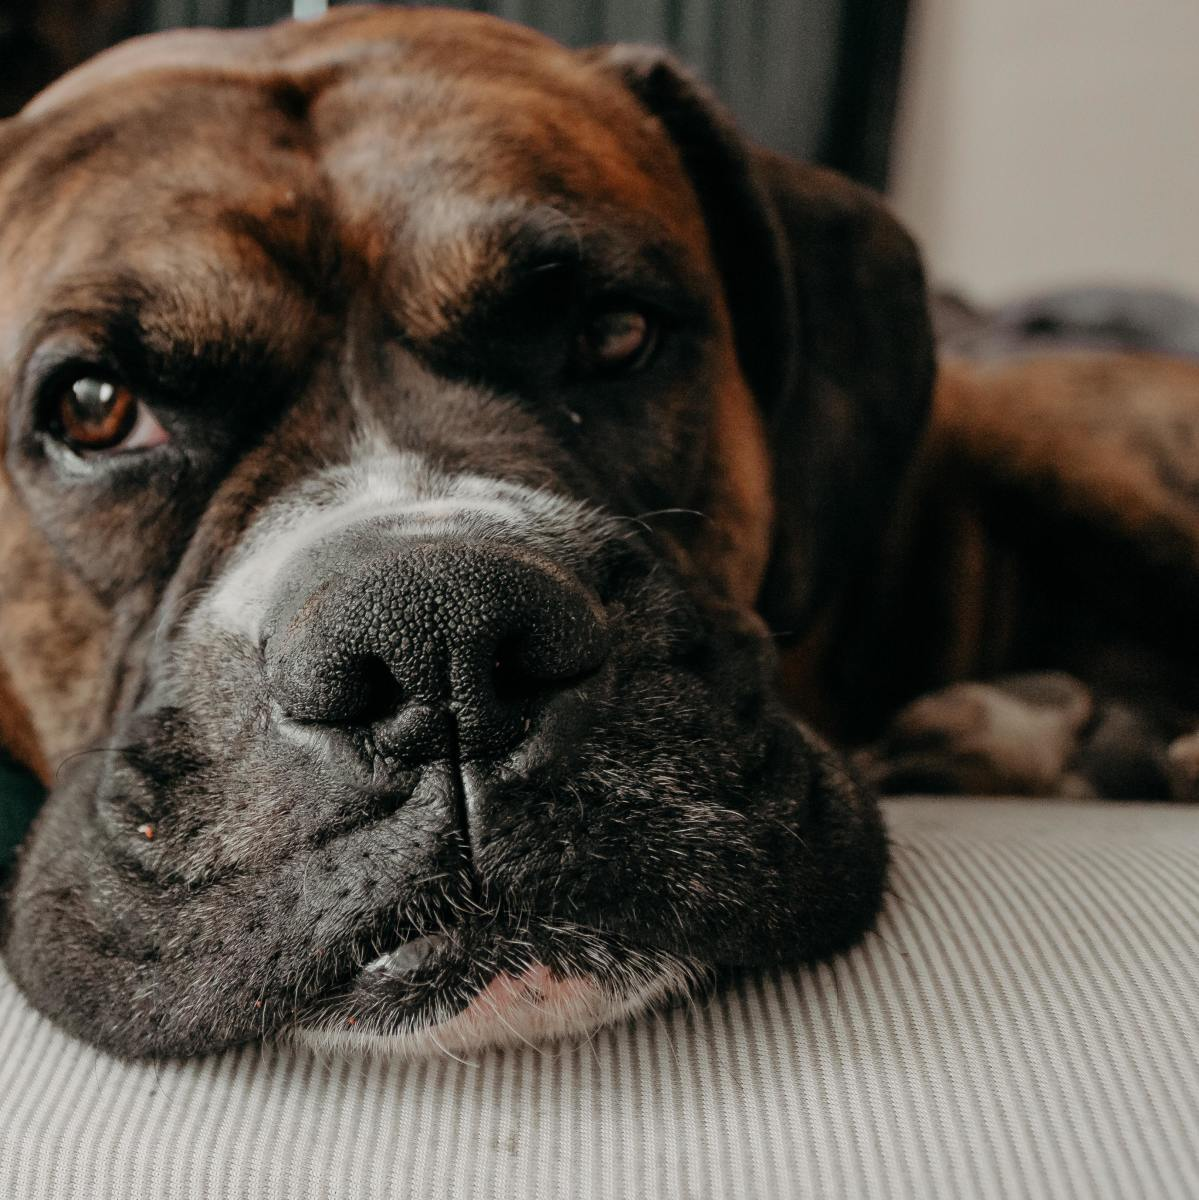 If your dog is coughing up foam, he likely feels miserable. Don't hesitate to take him in to the vet.